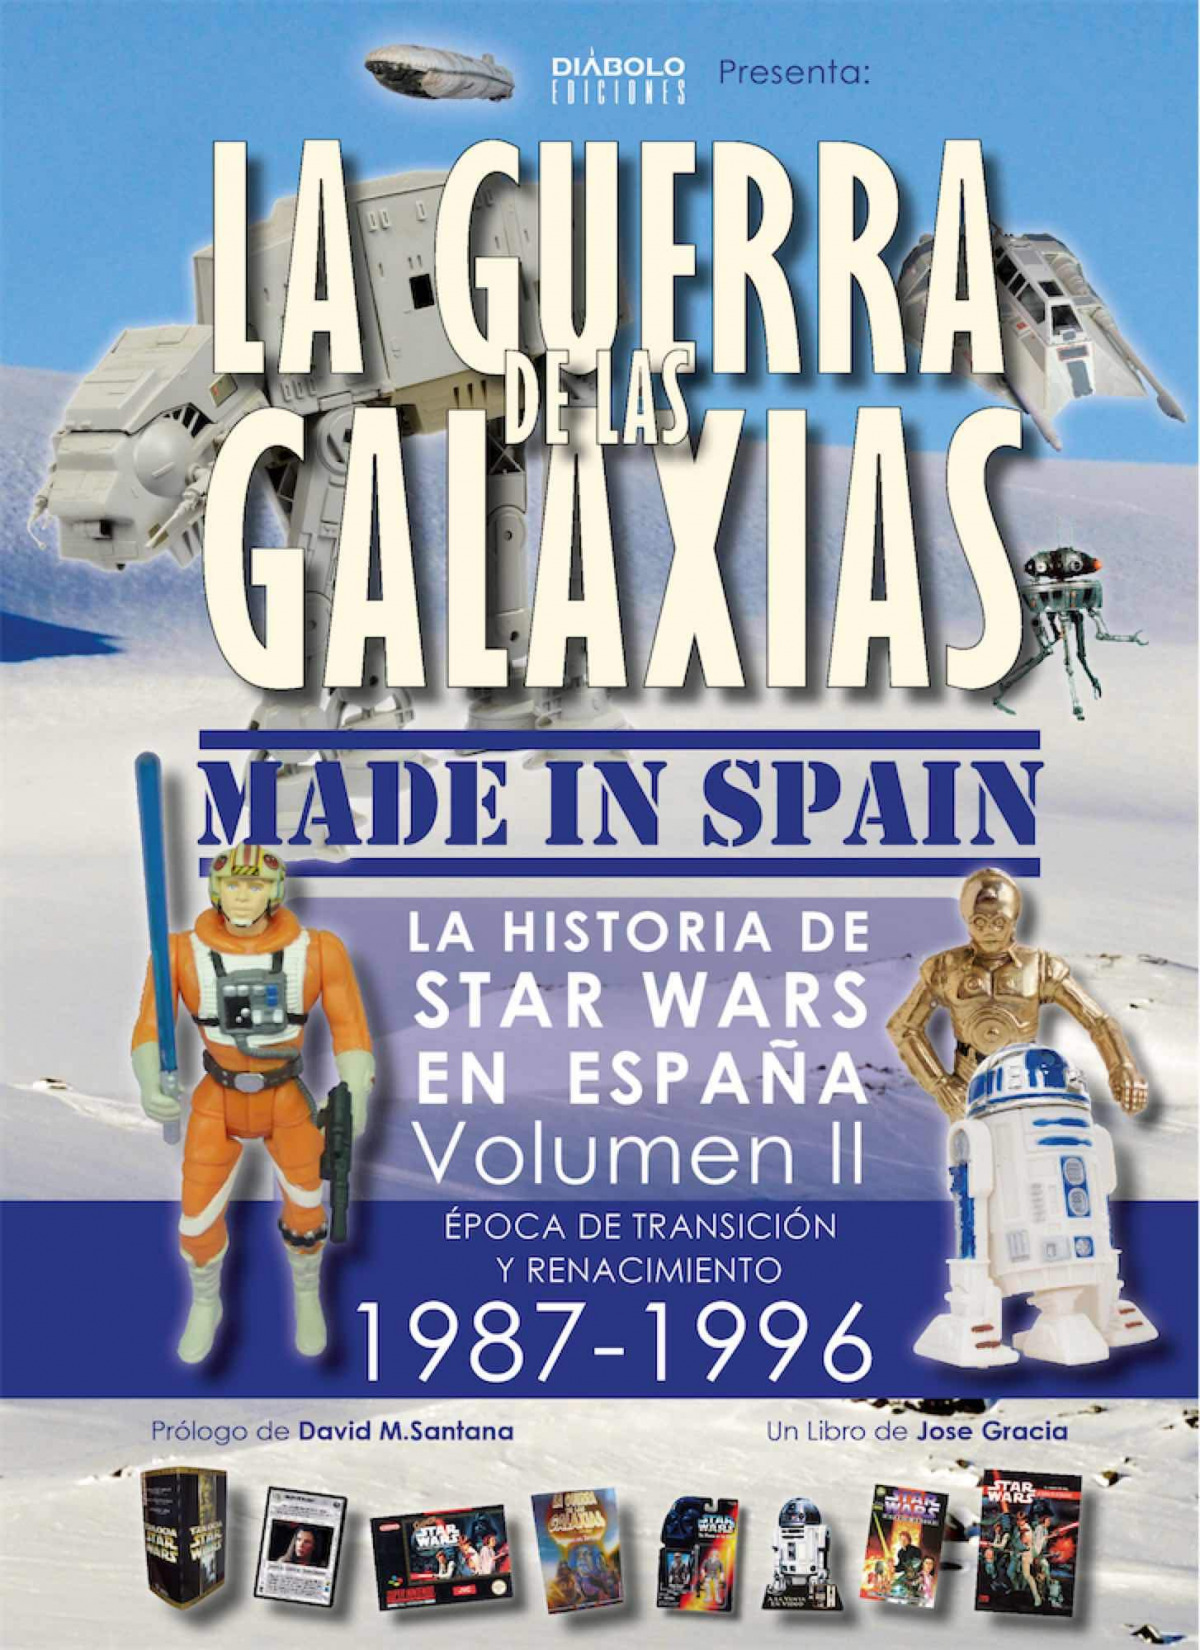 LA GUERRA DE LAS GALAXIAS MADE IN SPAIN